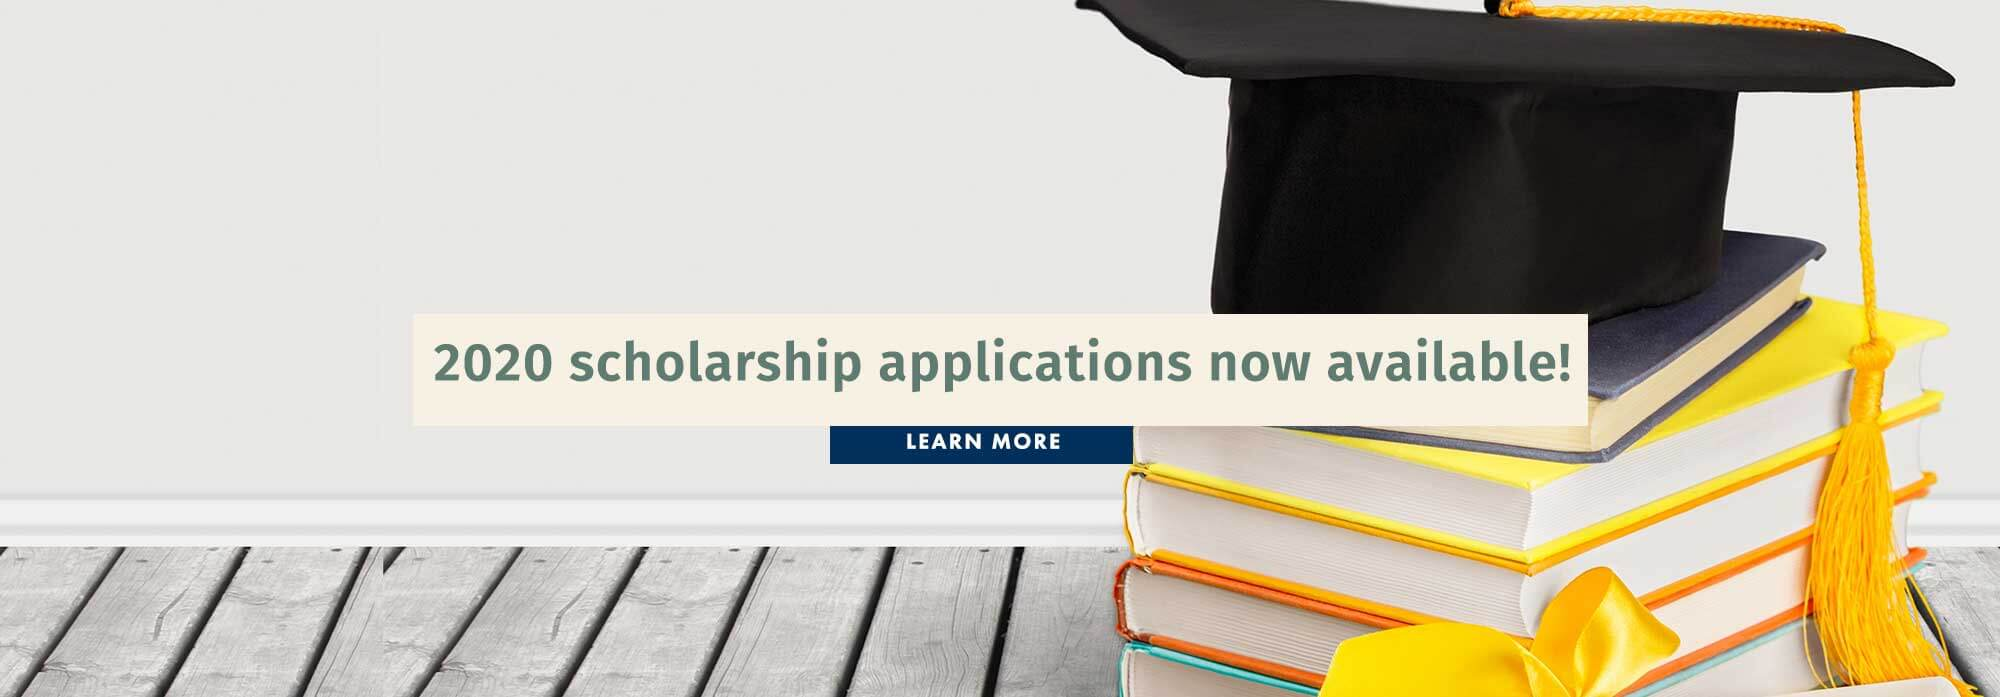 2020 scholarship applications now available!